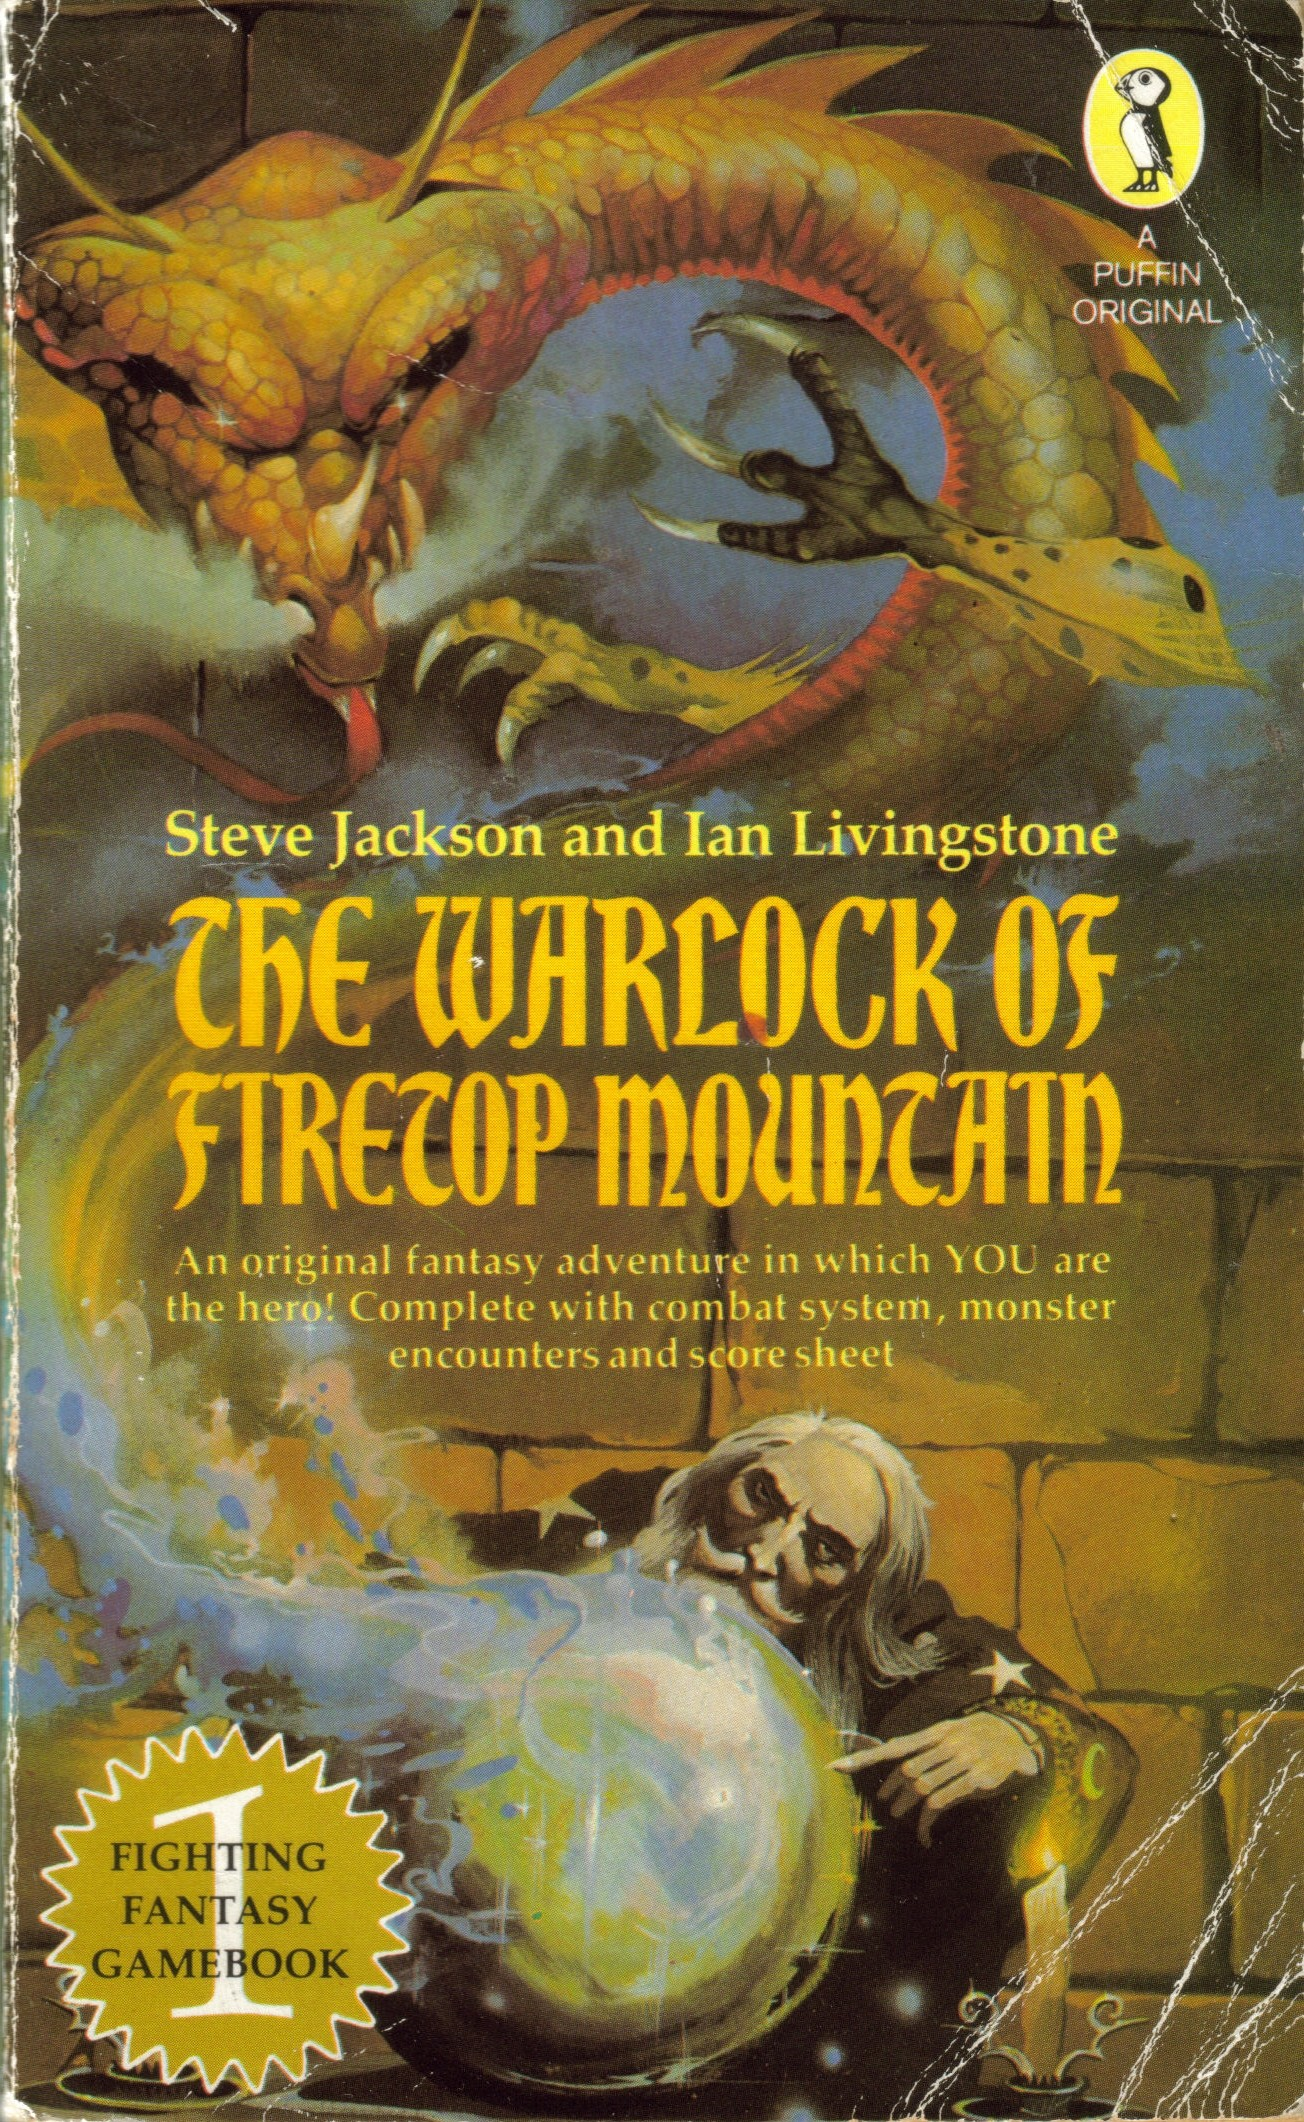 PETER JACKSON TO FILM WARLOCK OF FIRETOP MOUNTAIN